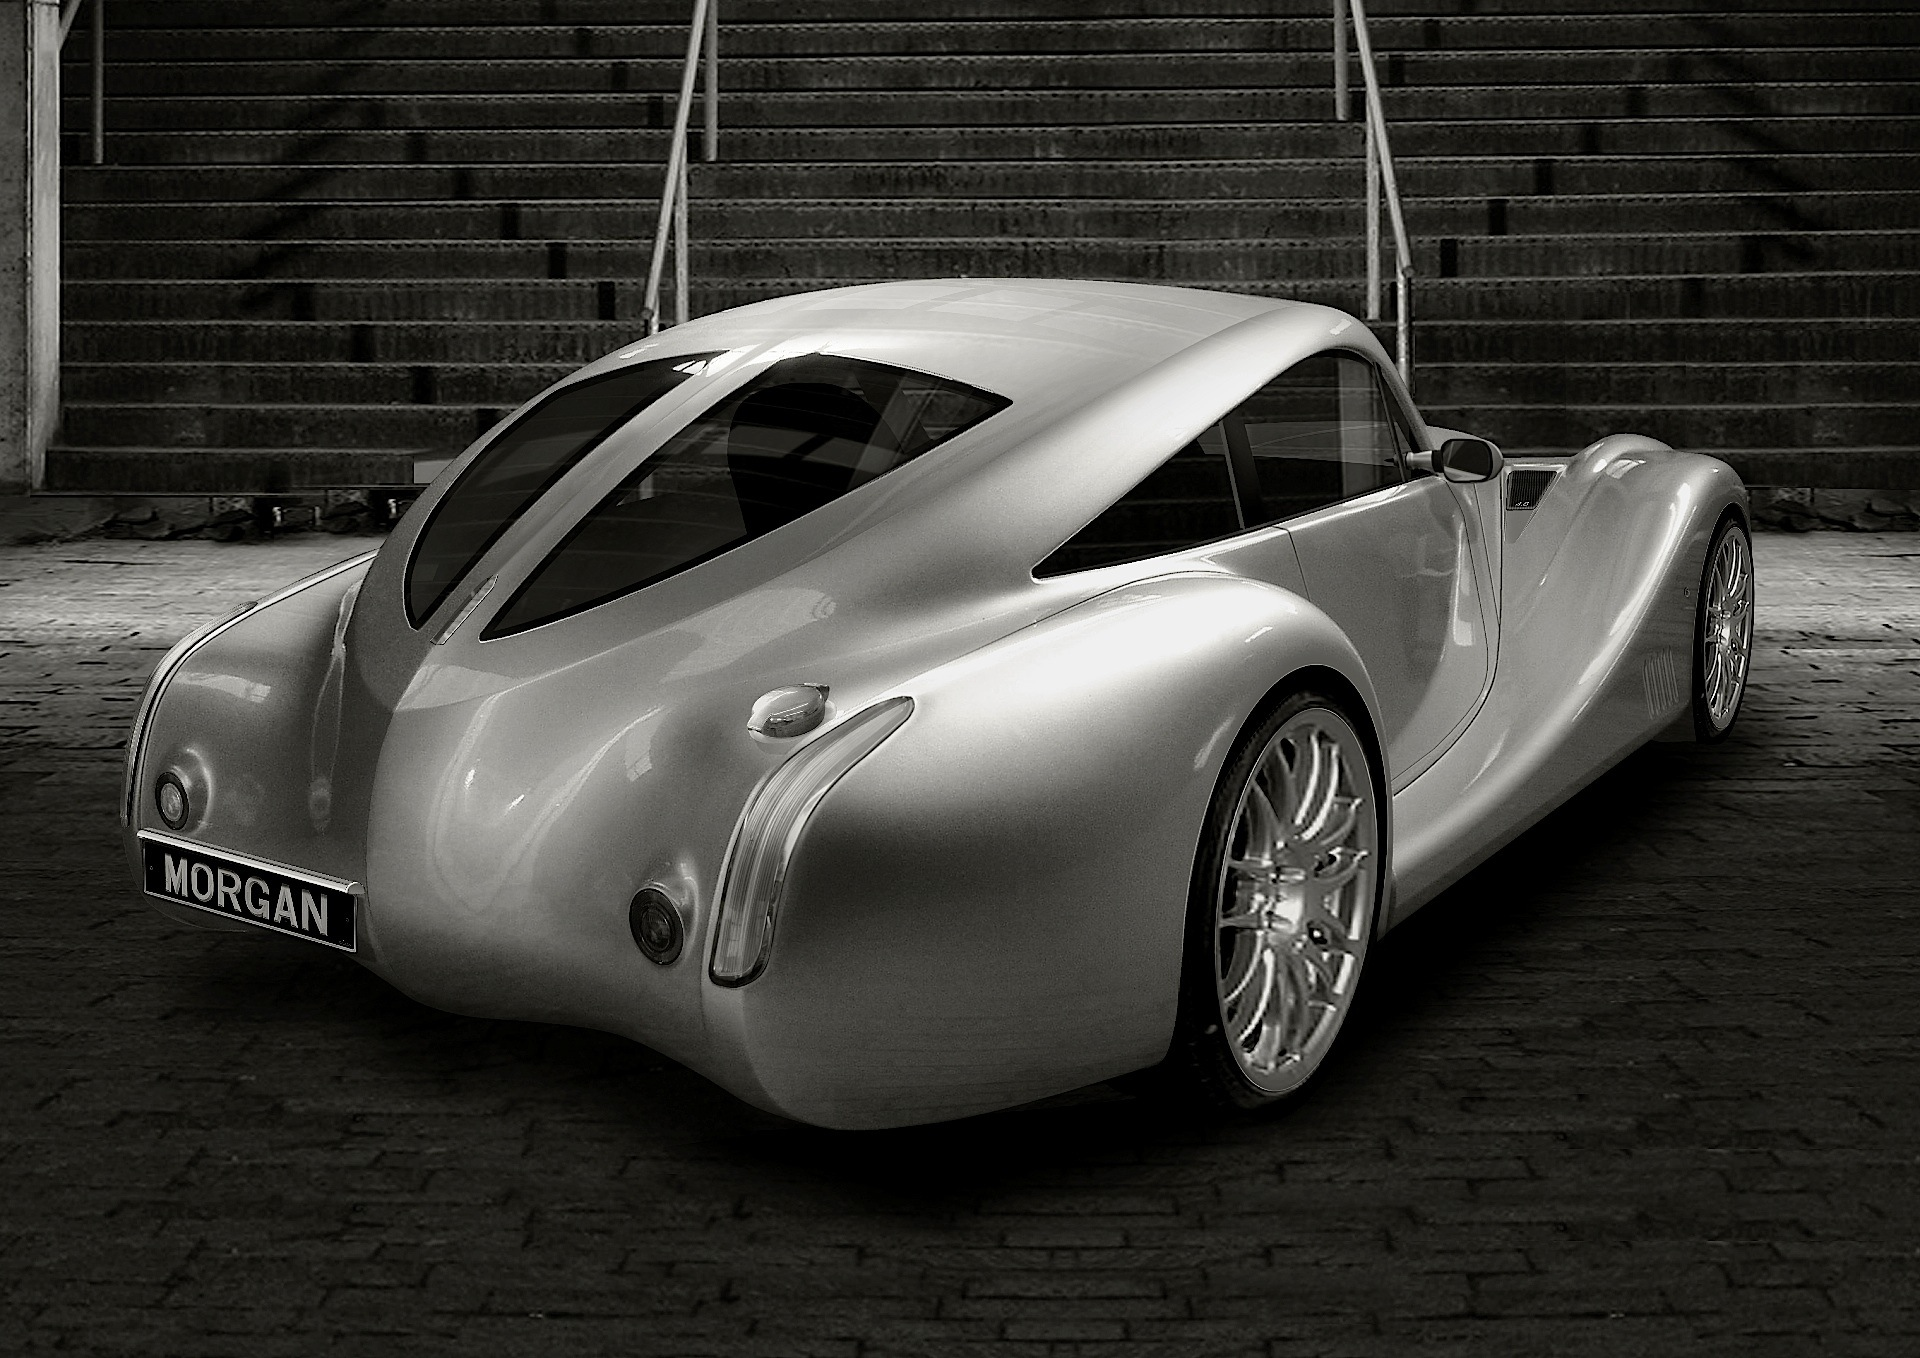 morgan aero coupe specs 2012 2013 2014 2015 2016 2017 2018 autoevolution. Black Bedroom Furniture Sets. Home Design Ideas